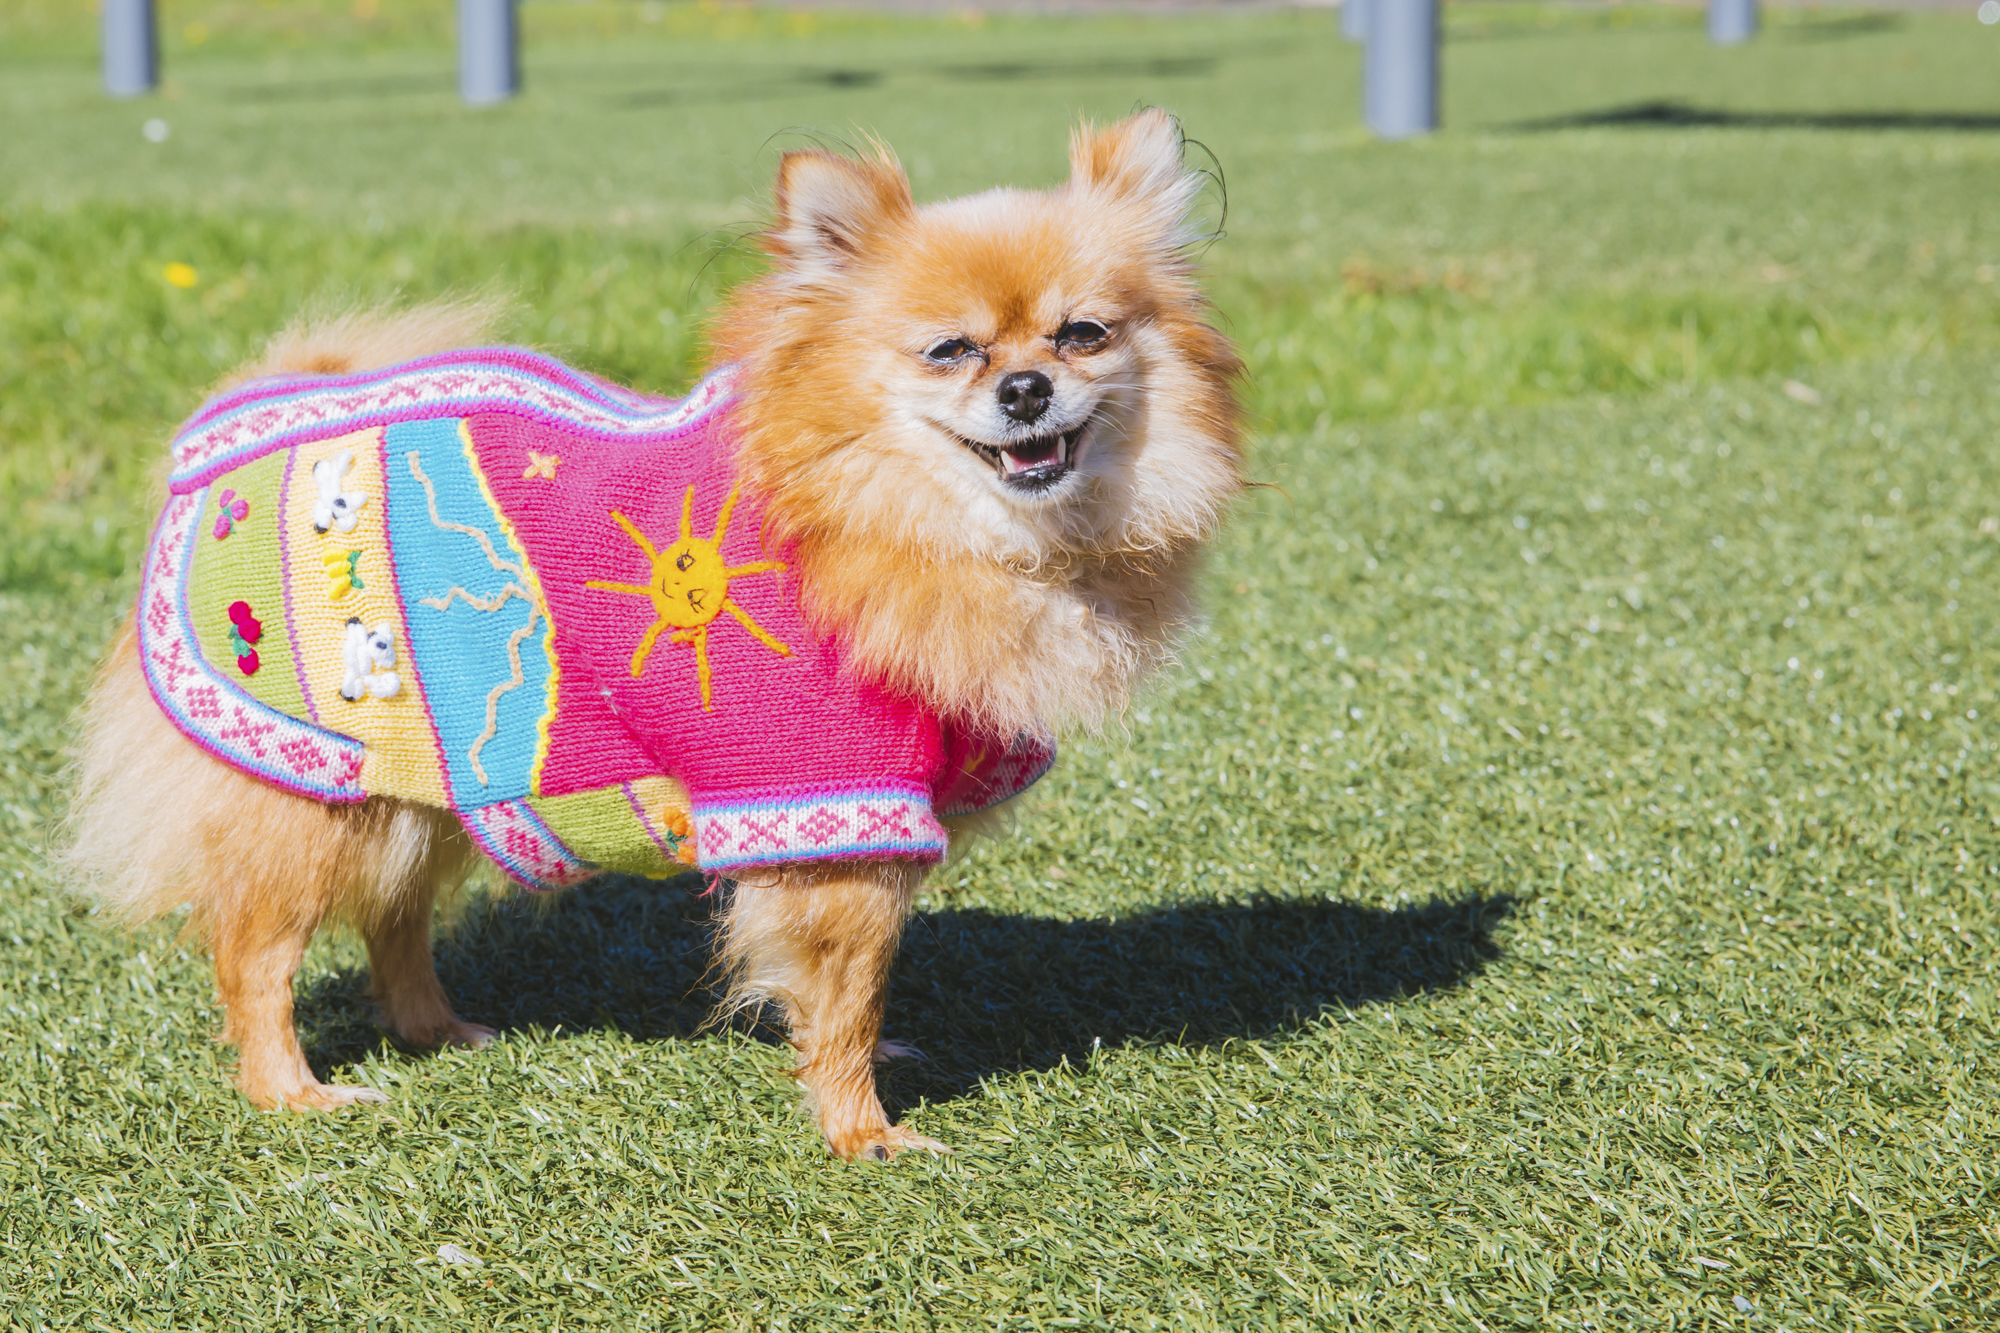 This weeks RUFFined is this beautiful little PomChi! Bella is around eight years old and is a sweet and sassy pom who's got a passion for fashion and a look that just won't quit! She likes being cradled like a baby, jumping in a purse and going for a stroll, and puppuccions. She dislikes being left at home, cats and getting her butt sniffed. You can follow Bella's journey through life on instagram @babybellabean.{ }The Seattle RUFFined Spotlight is a weekly profile of local pets living and loving life in the PNW. If you or someone you know has a pet you'd like featured, email us at hello@seattlerefined.com or tag #SeattleRUFFined and your furbaby could be the next spotlighted! (Image: Sunita Martini / Seattle Refined).